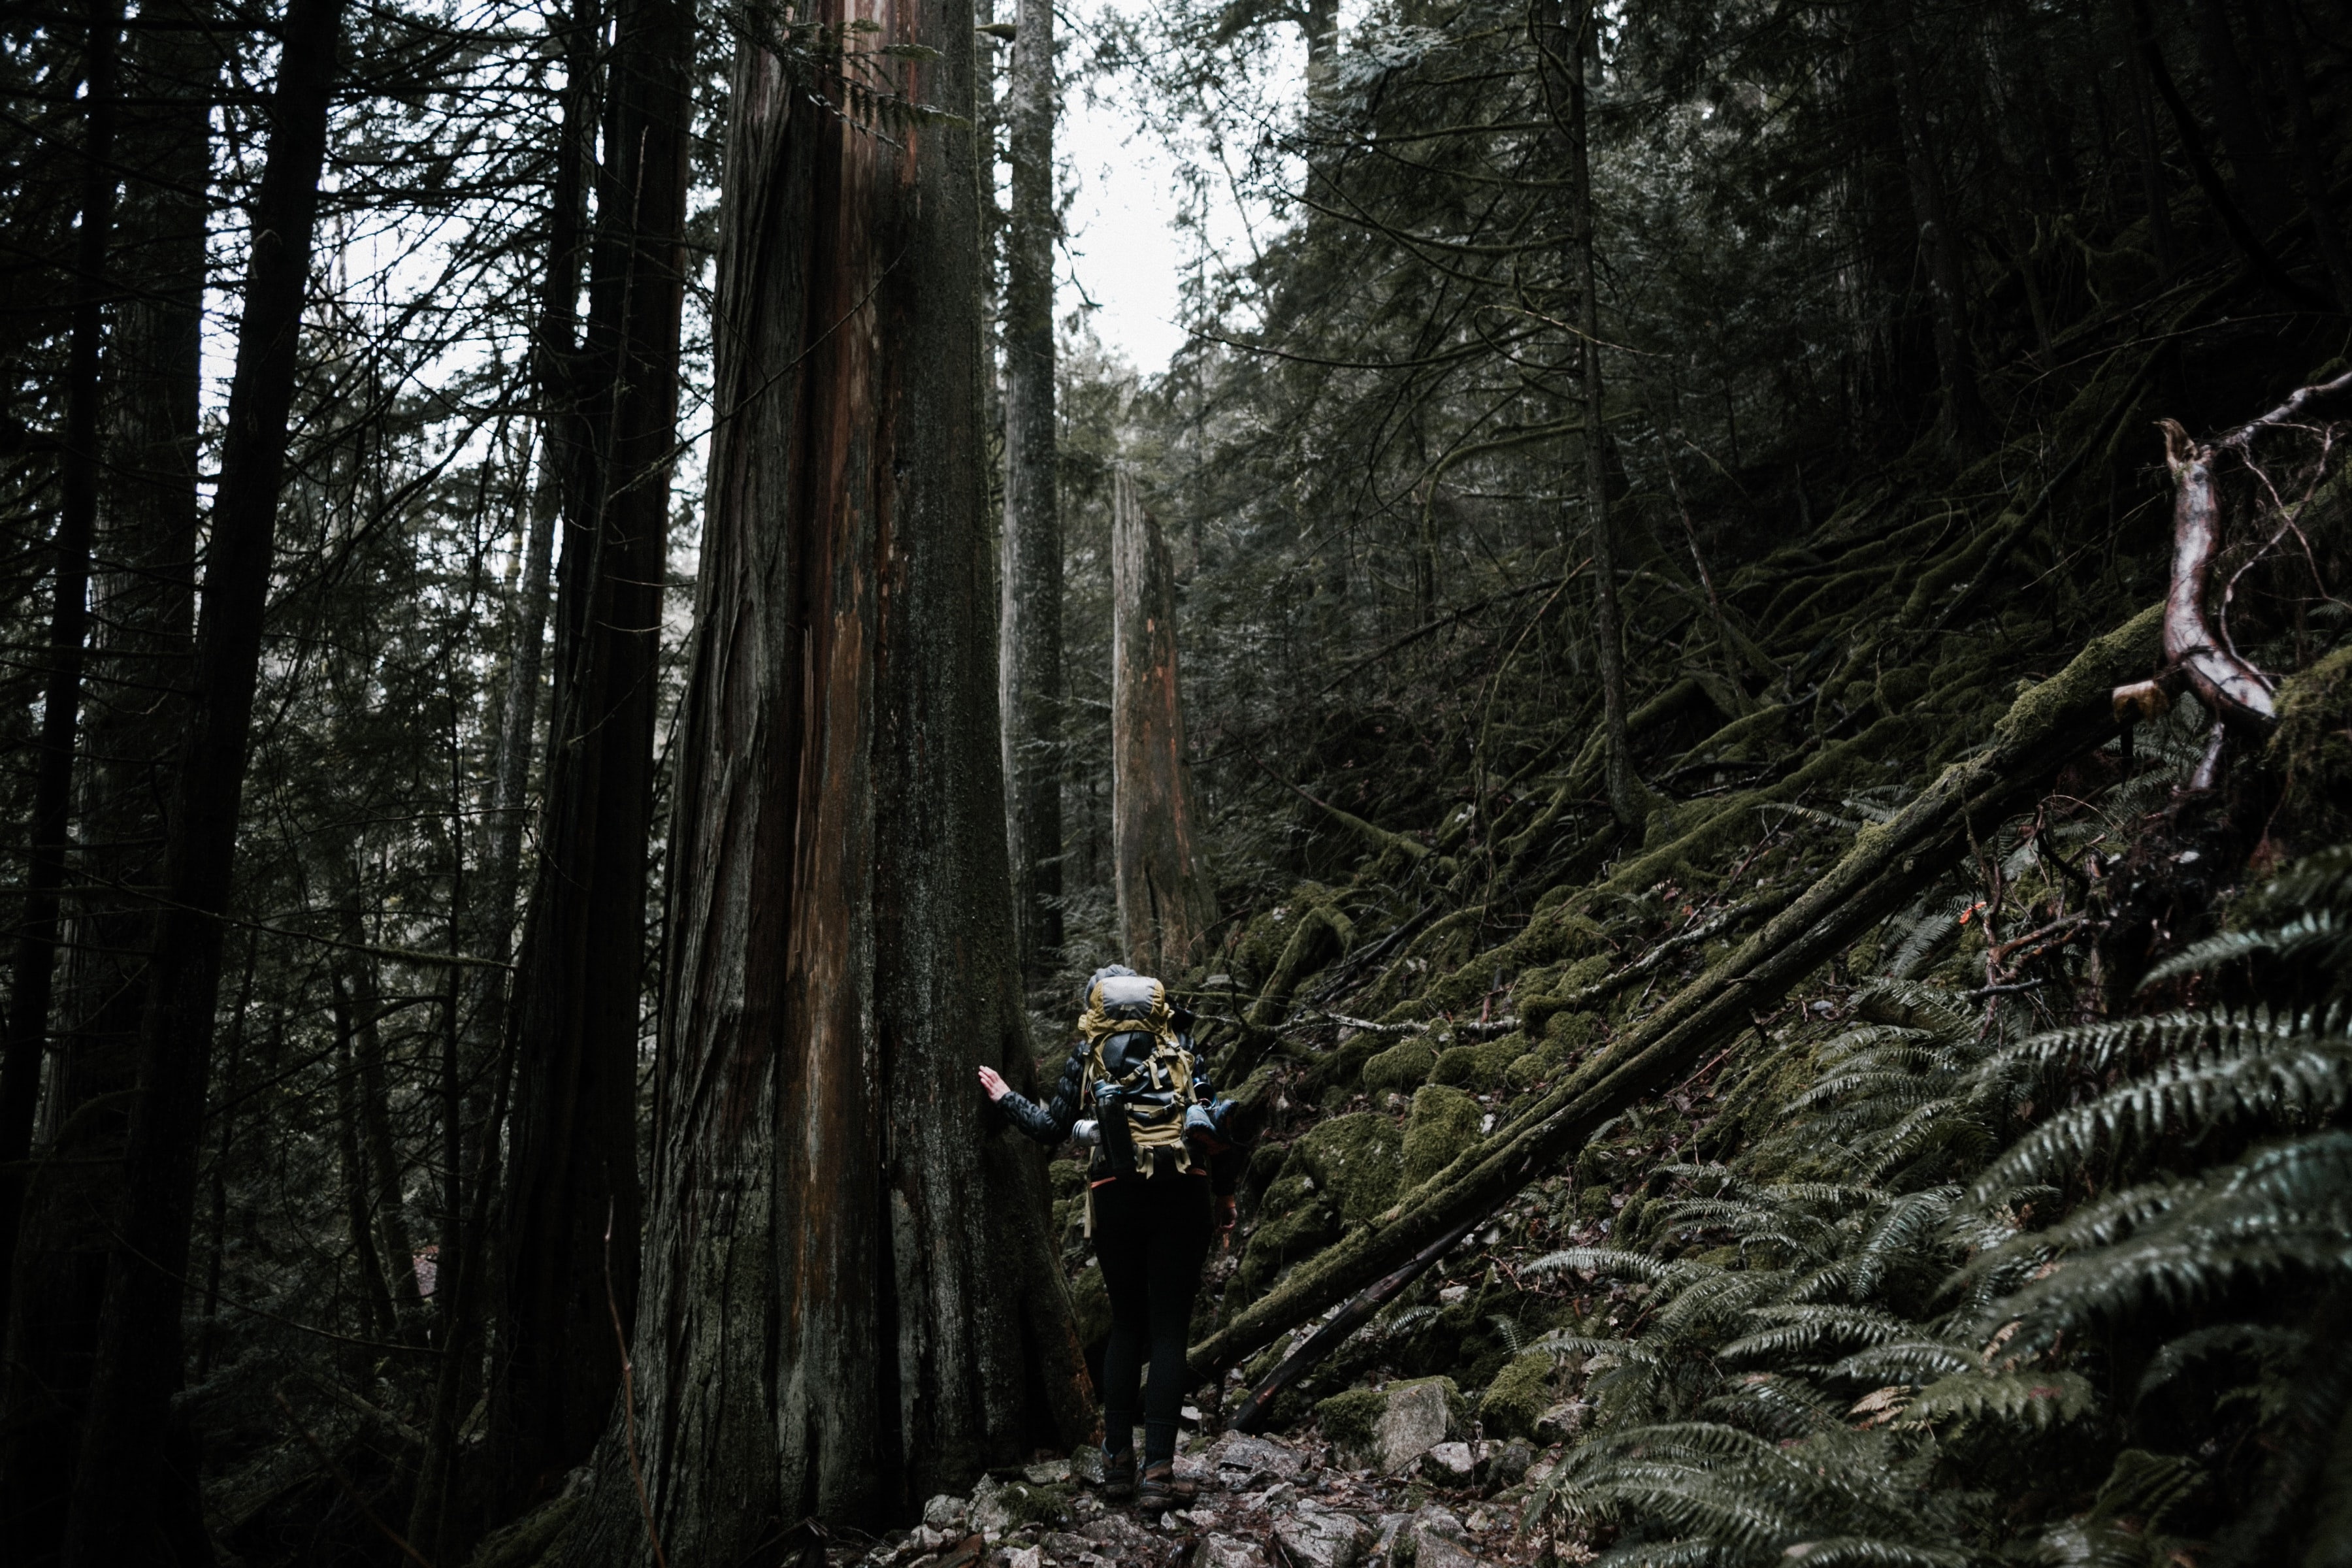 A long hiker standing next to a massive tree by a rocky slope